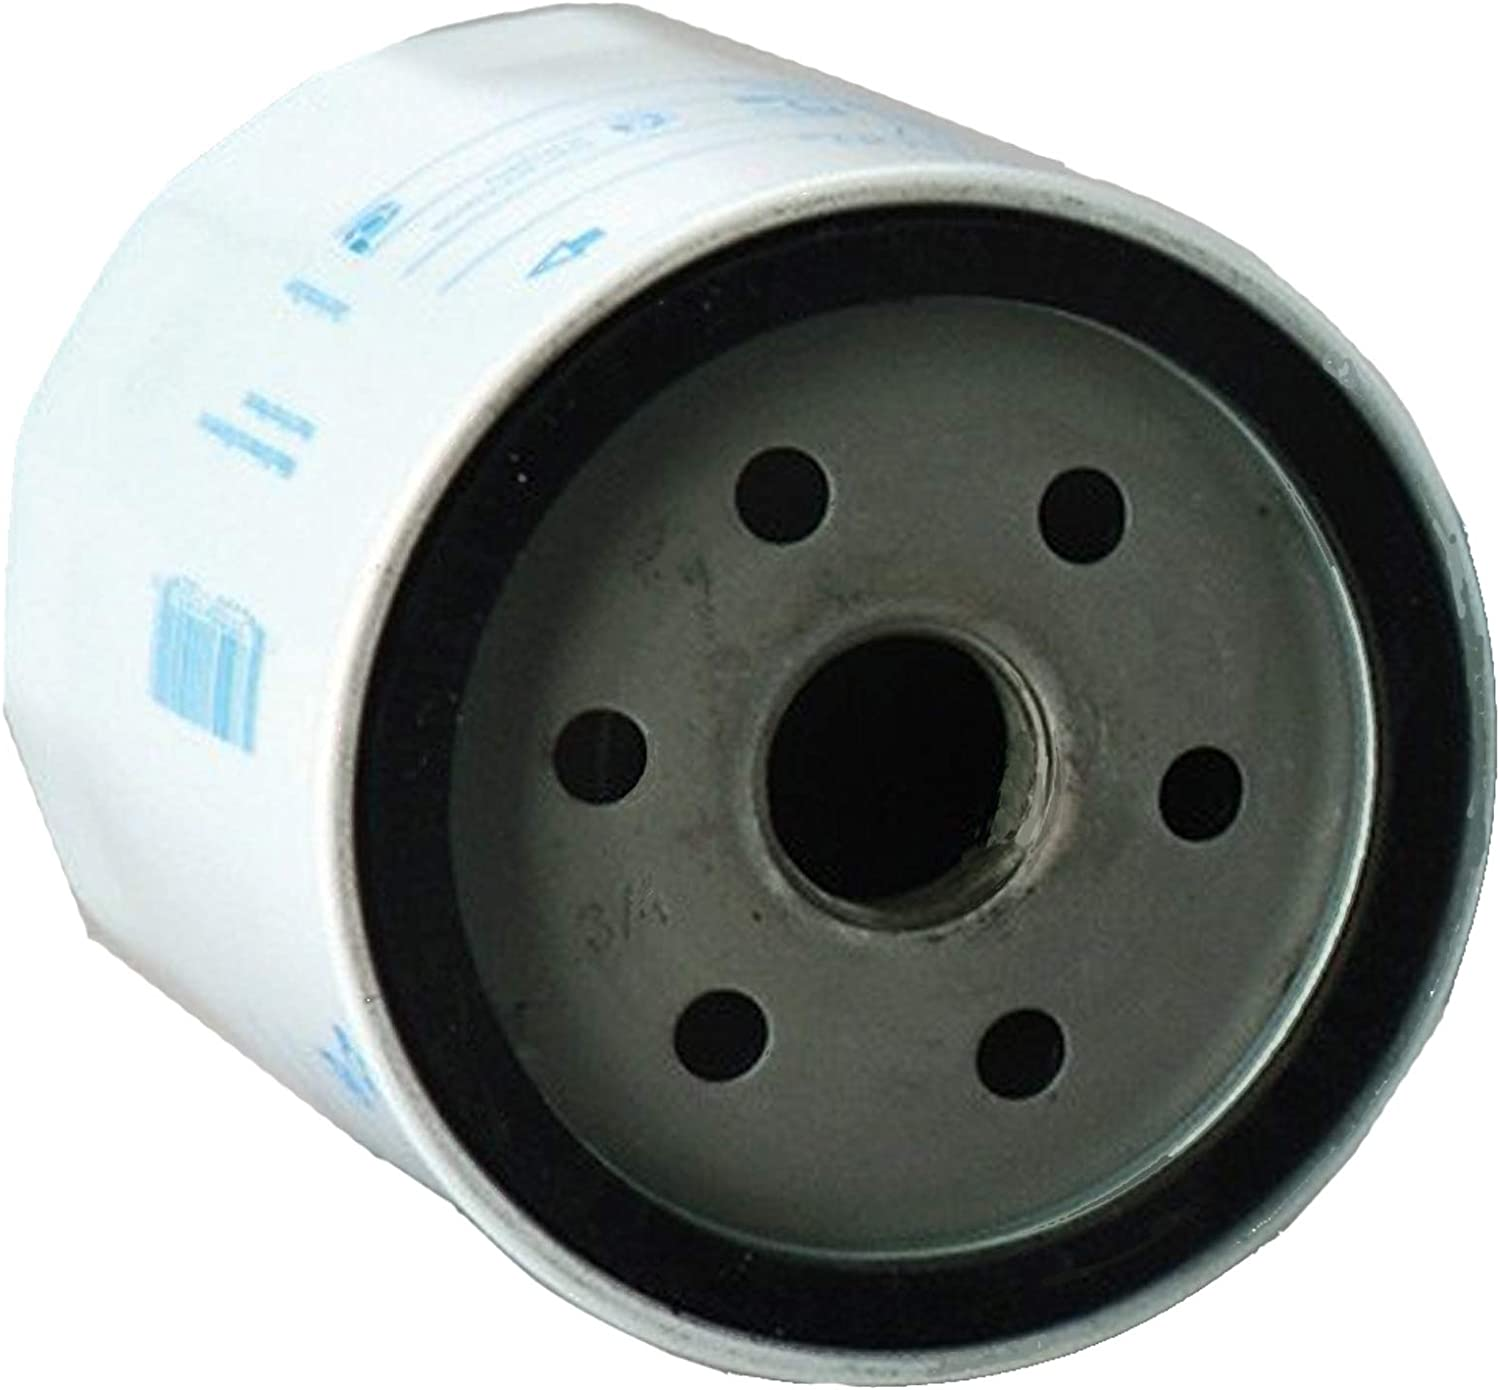 """Transmission Filter for 32"""" & 36"""" Deck Mowers/Replacement for Wright  Stander 34490002, 120-471, 68140, 7042715YP: Automotive - Amazon.com 